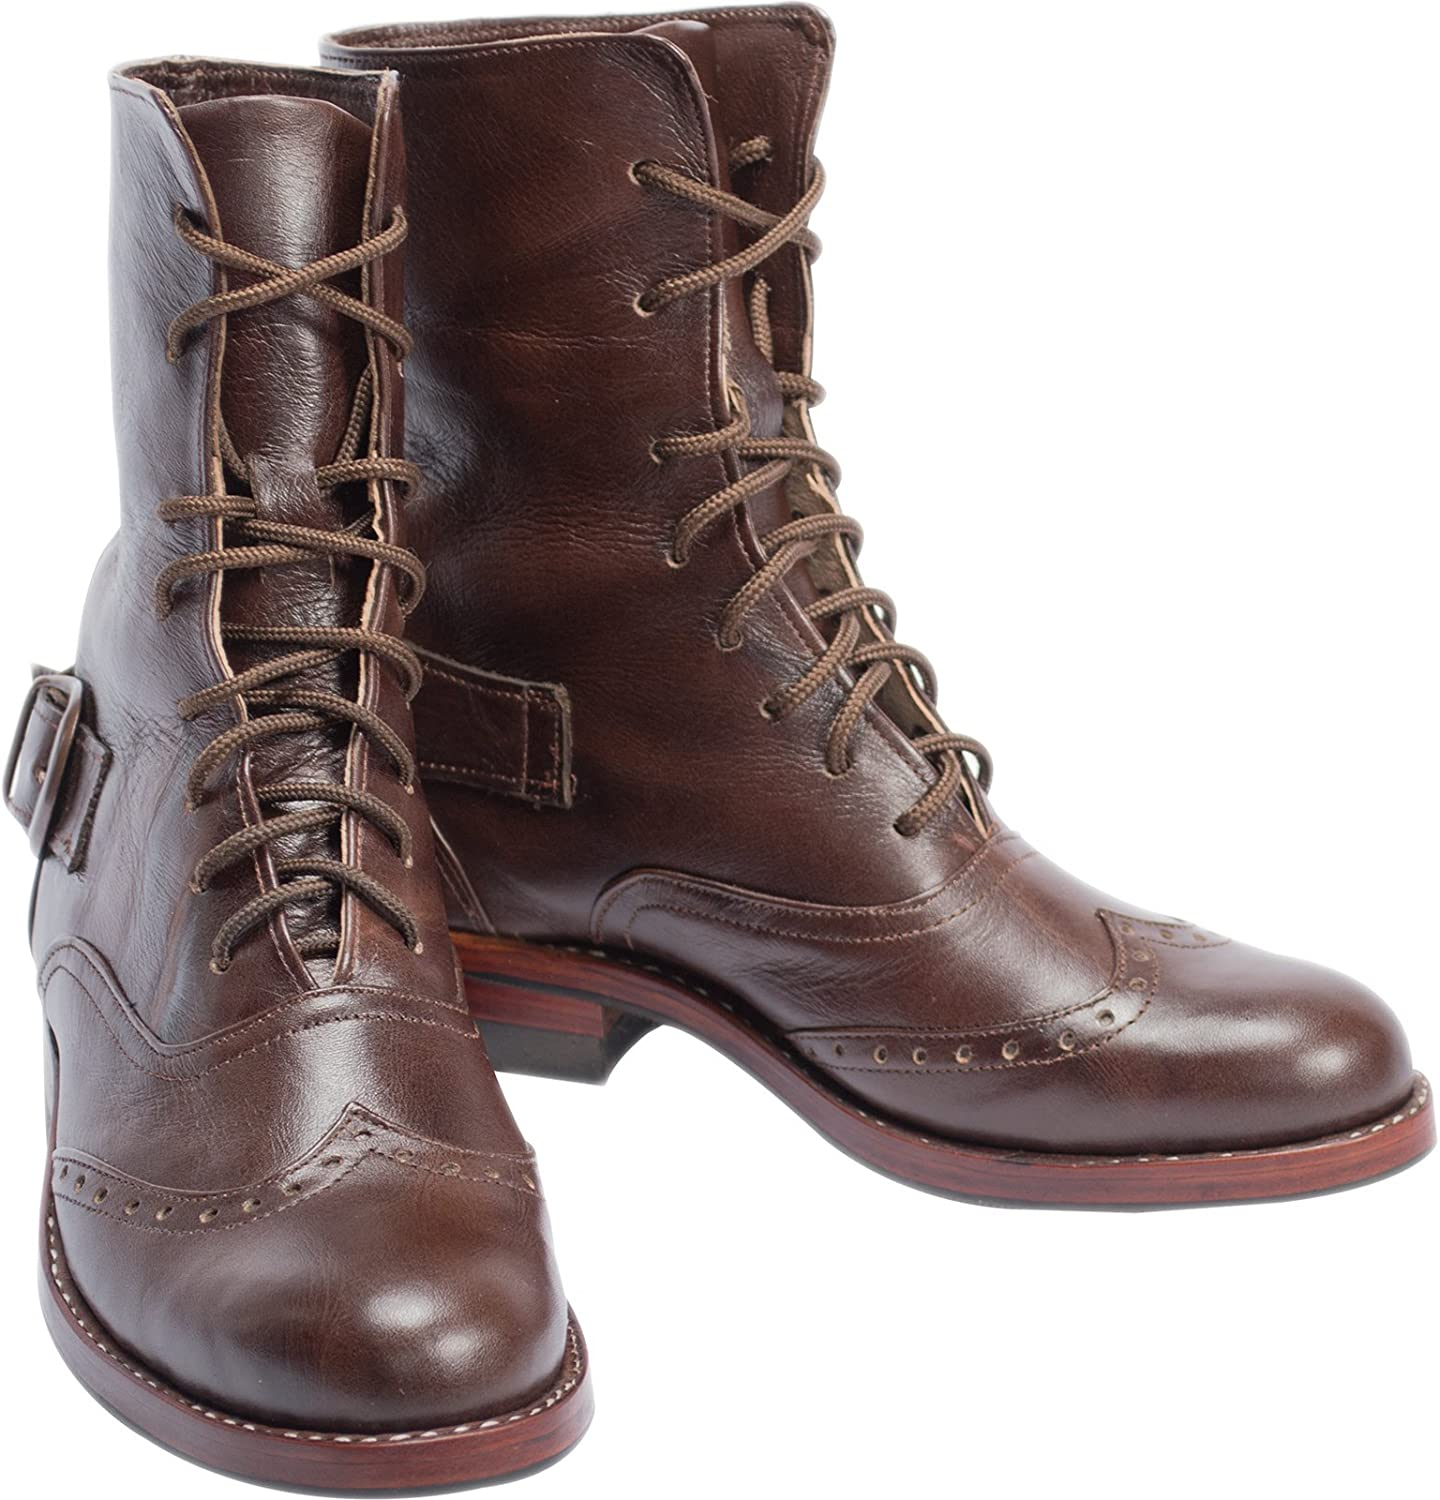 Atitlan Leather Women's Leather Brogue Combat Boots